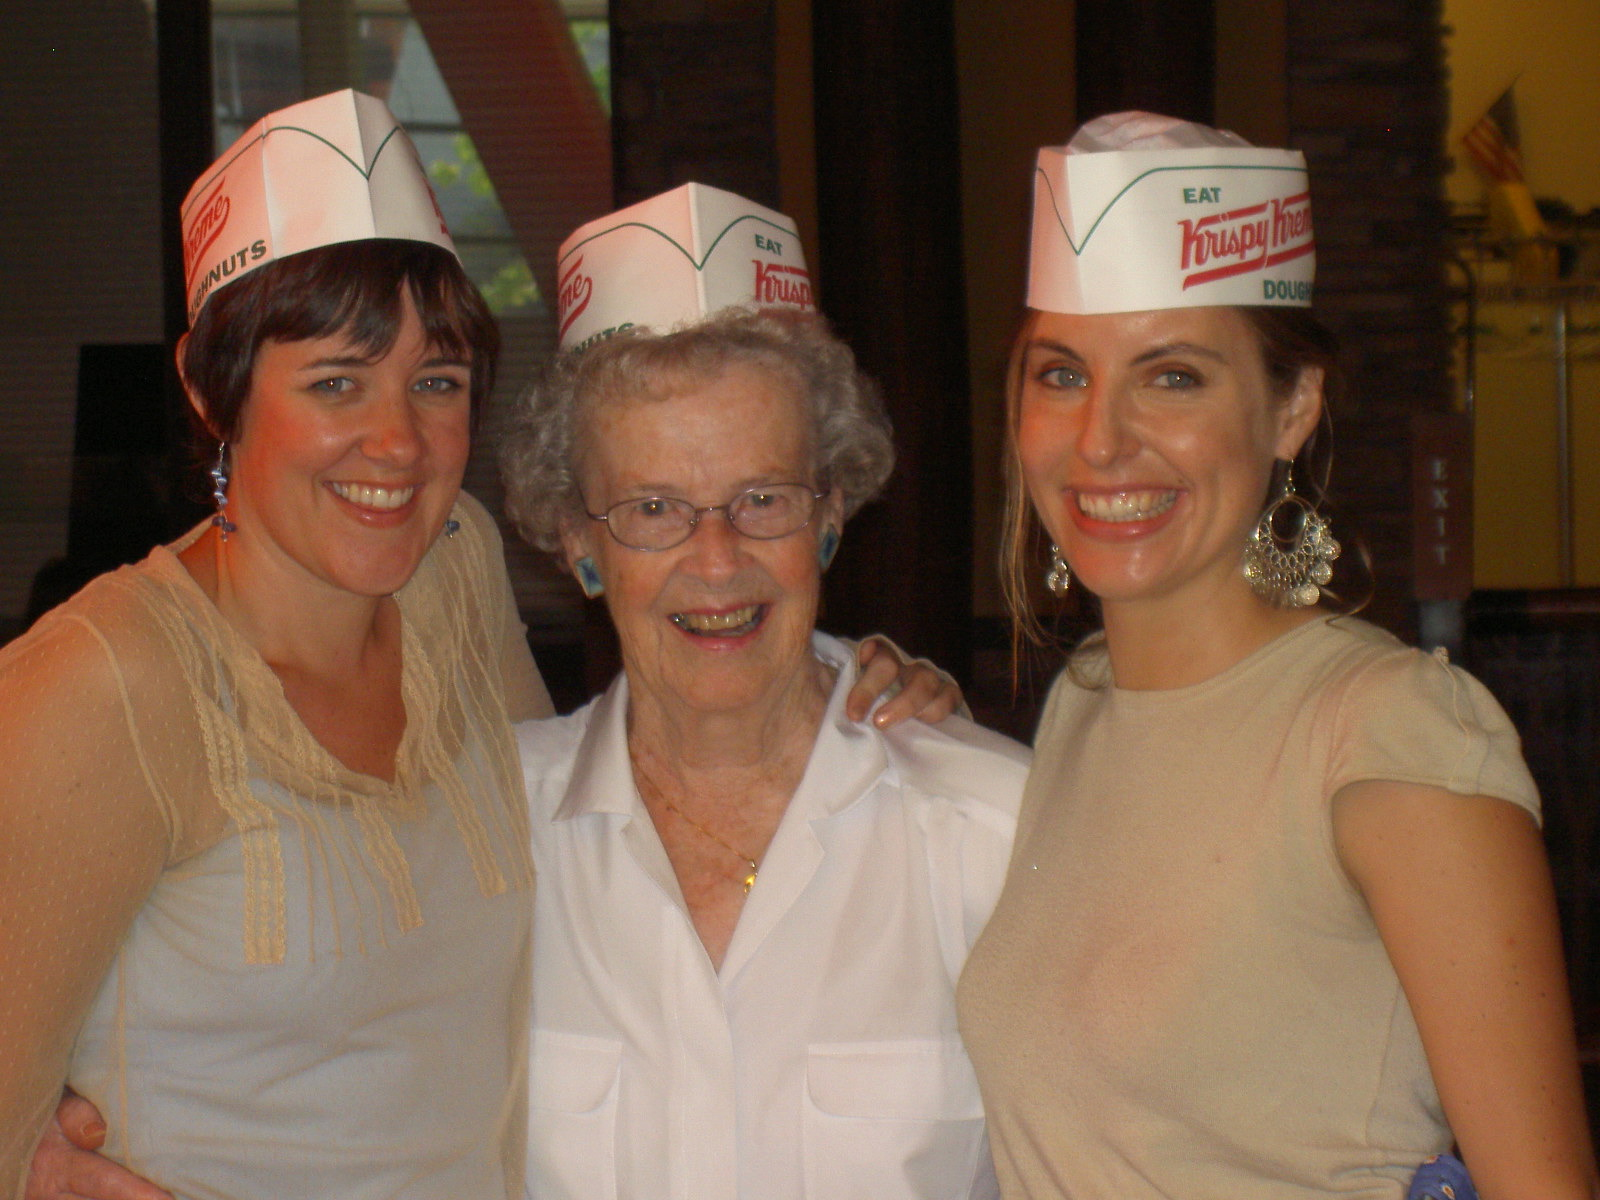 That time we gambled and ate doughnuts, 2005.